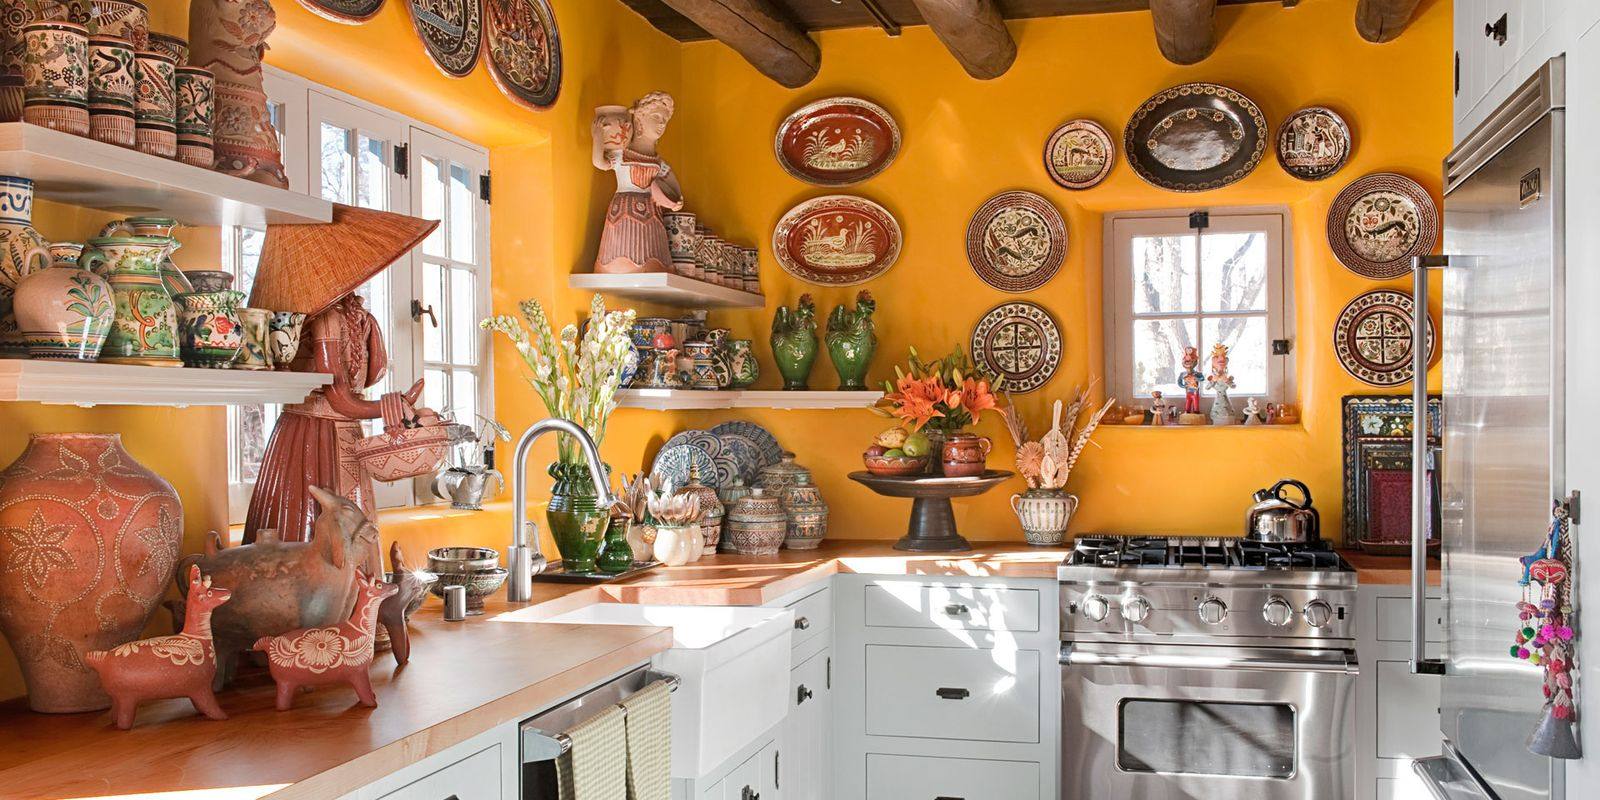 ... Mexican Folk Art, Wall Art. Home And Interior Design Ideas